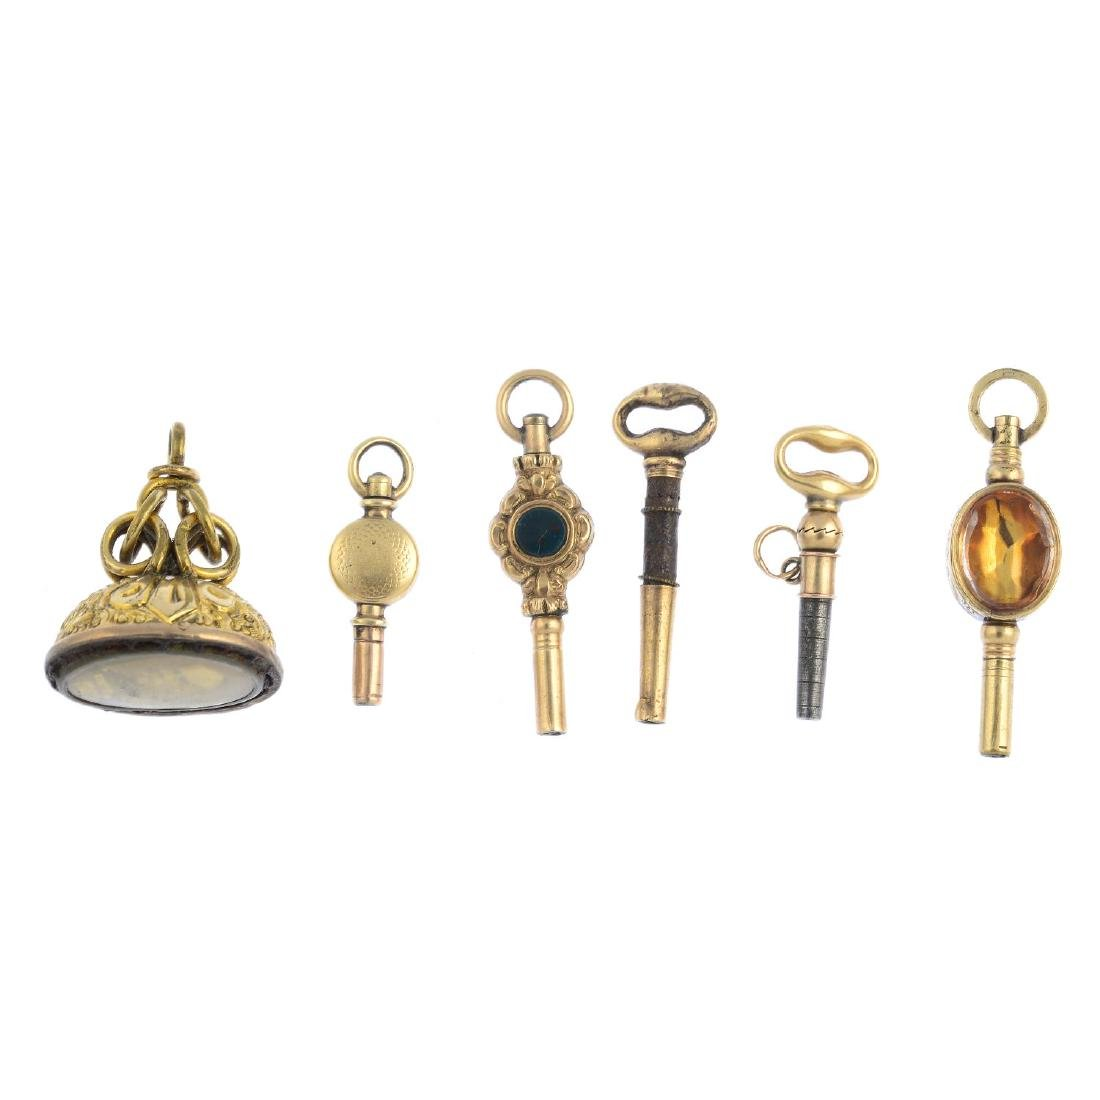 Six late 19th century and early 20th century watch keys